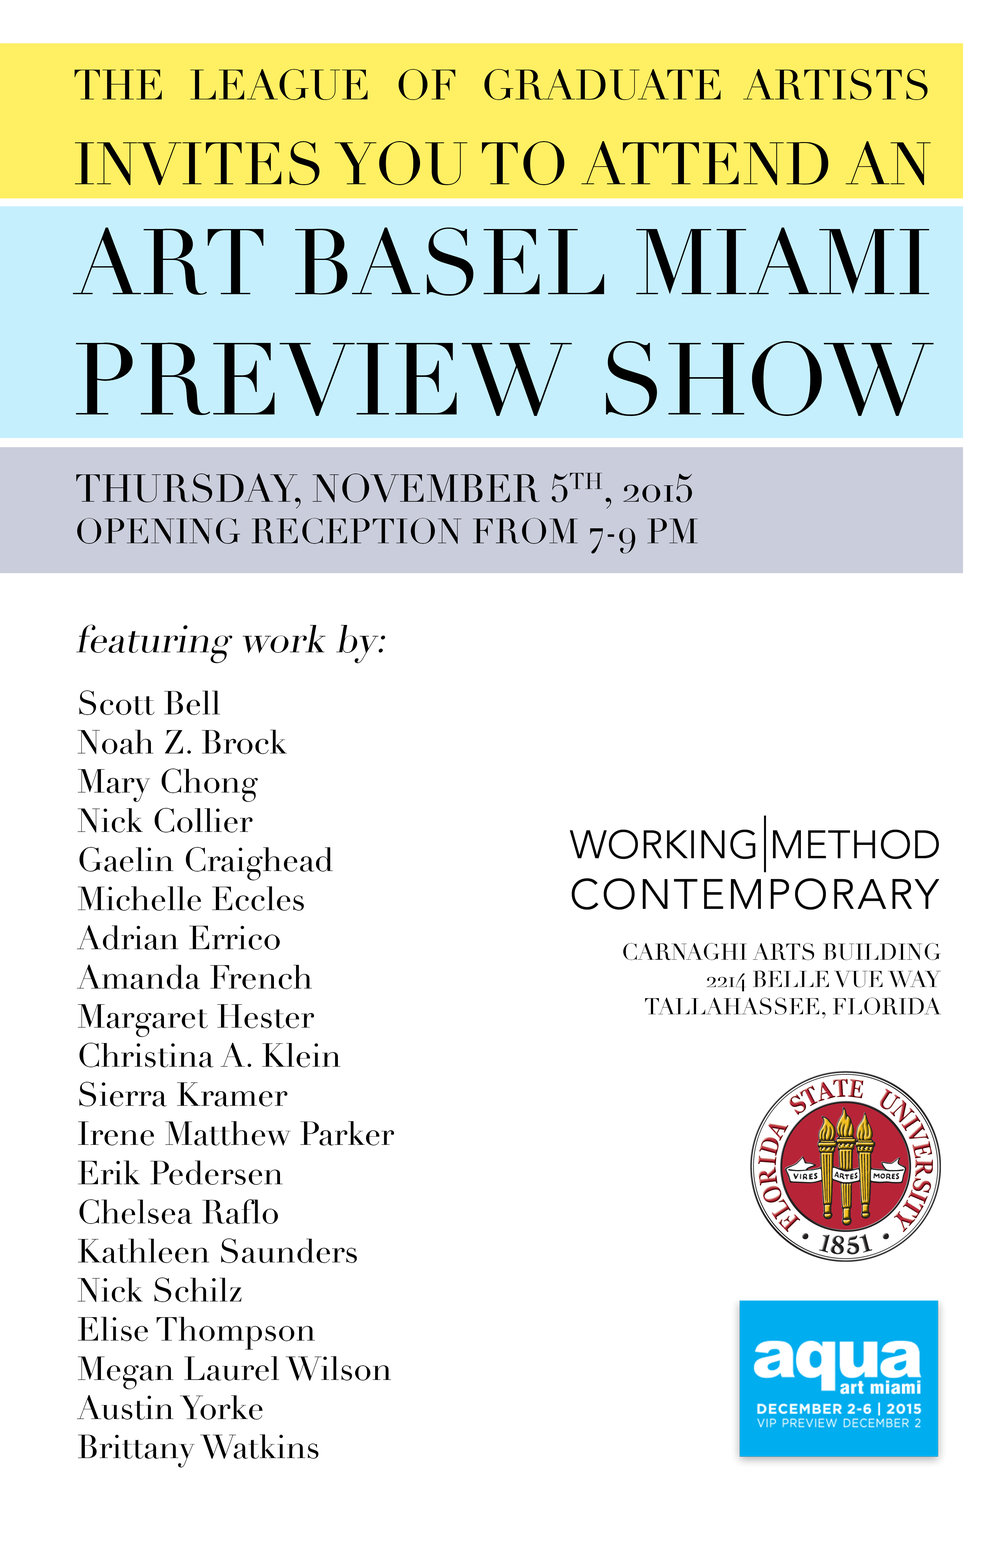 Promotional poster for The League of Graduate Artists' Art Basel Miami Preview Show.